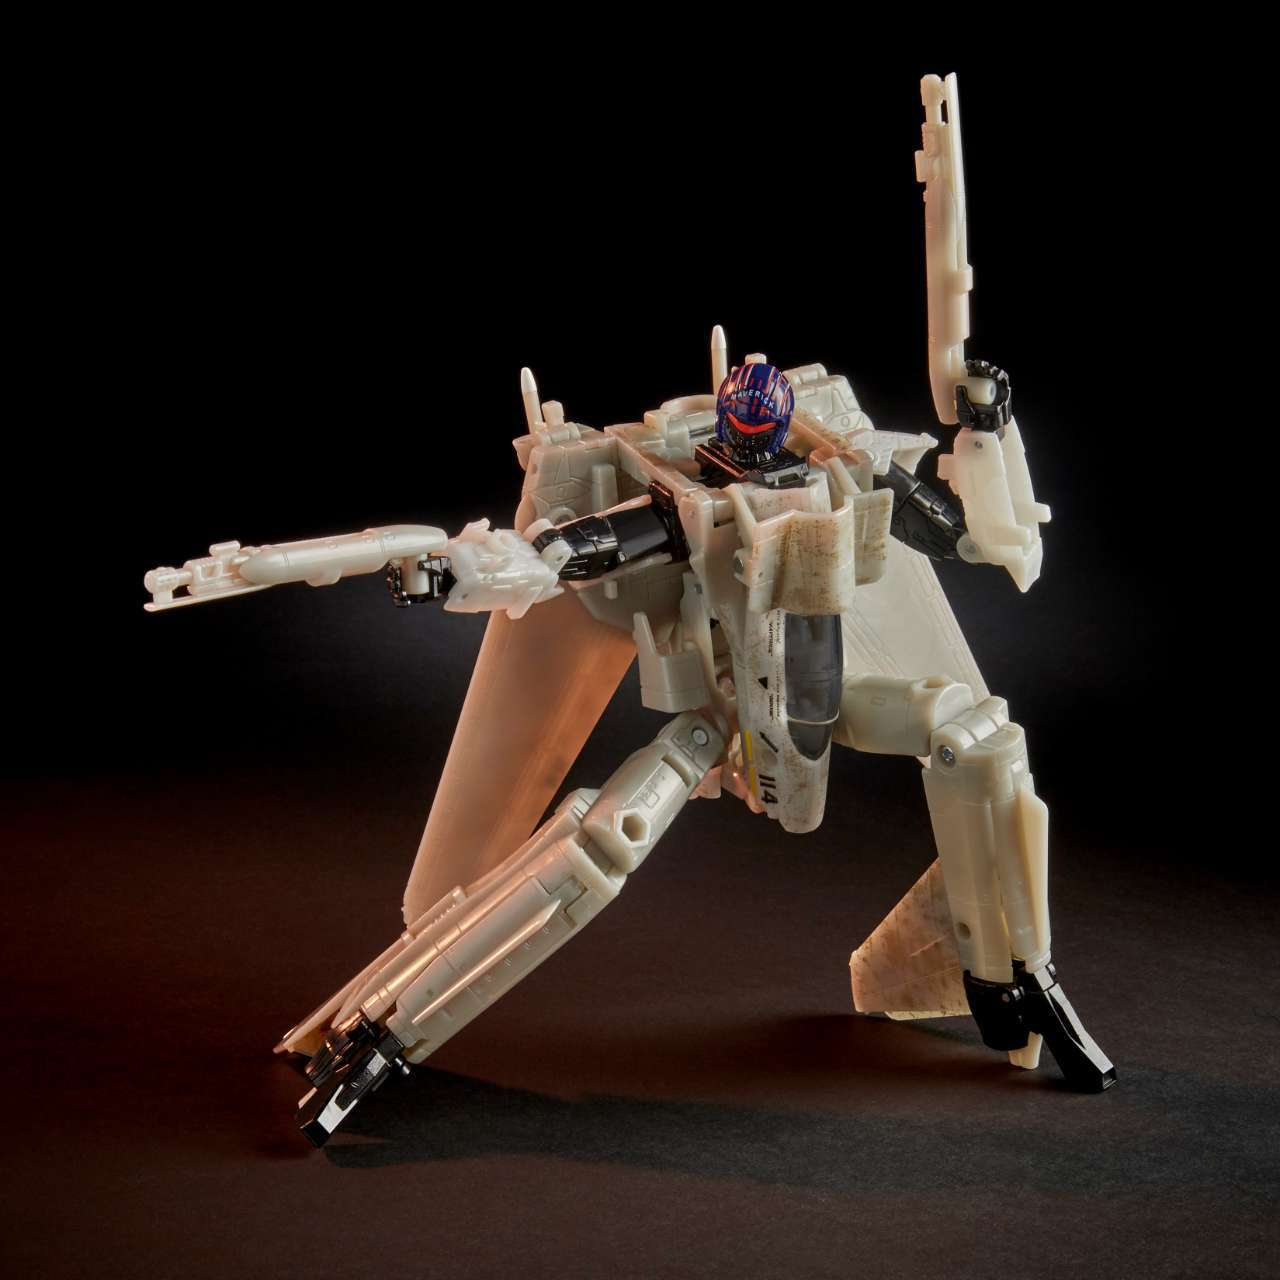 top-gun-transformers-maverickE8544_PROD_TRA_PROJECT_CRUISE_1381 v2